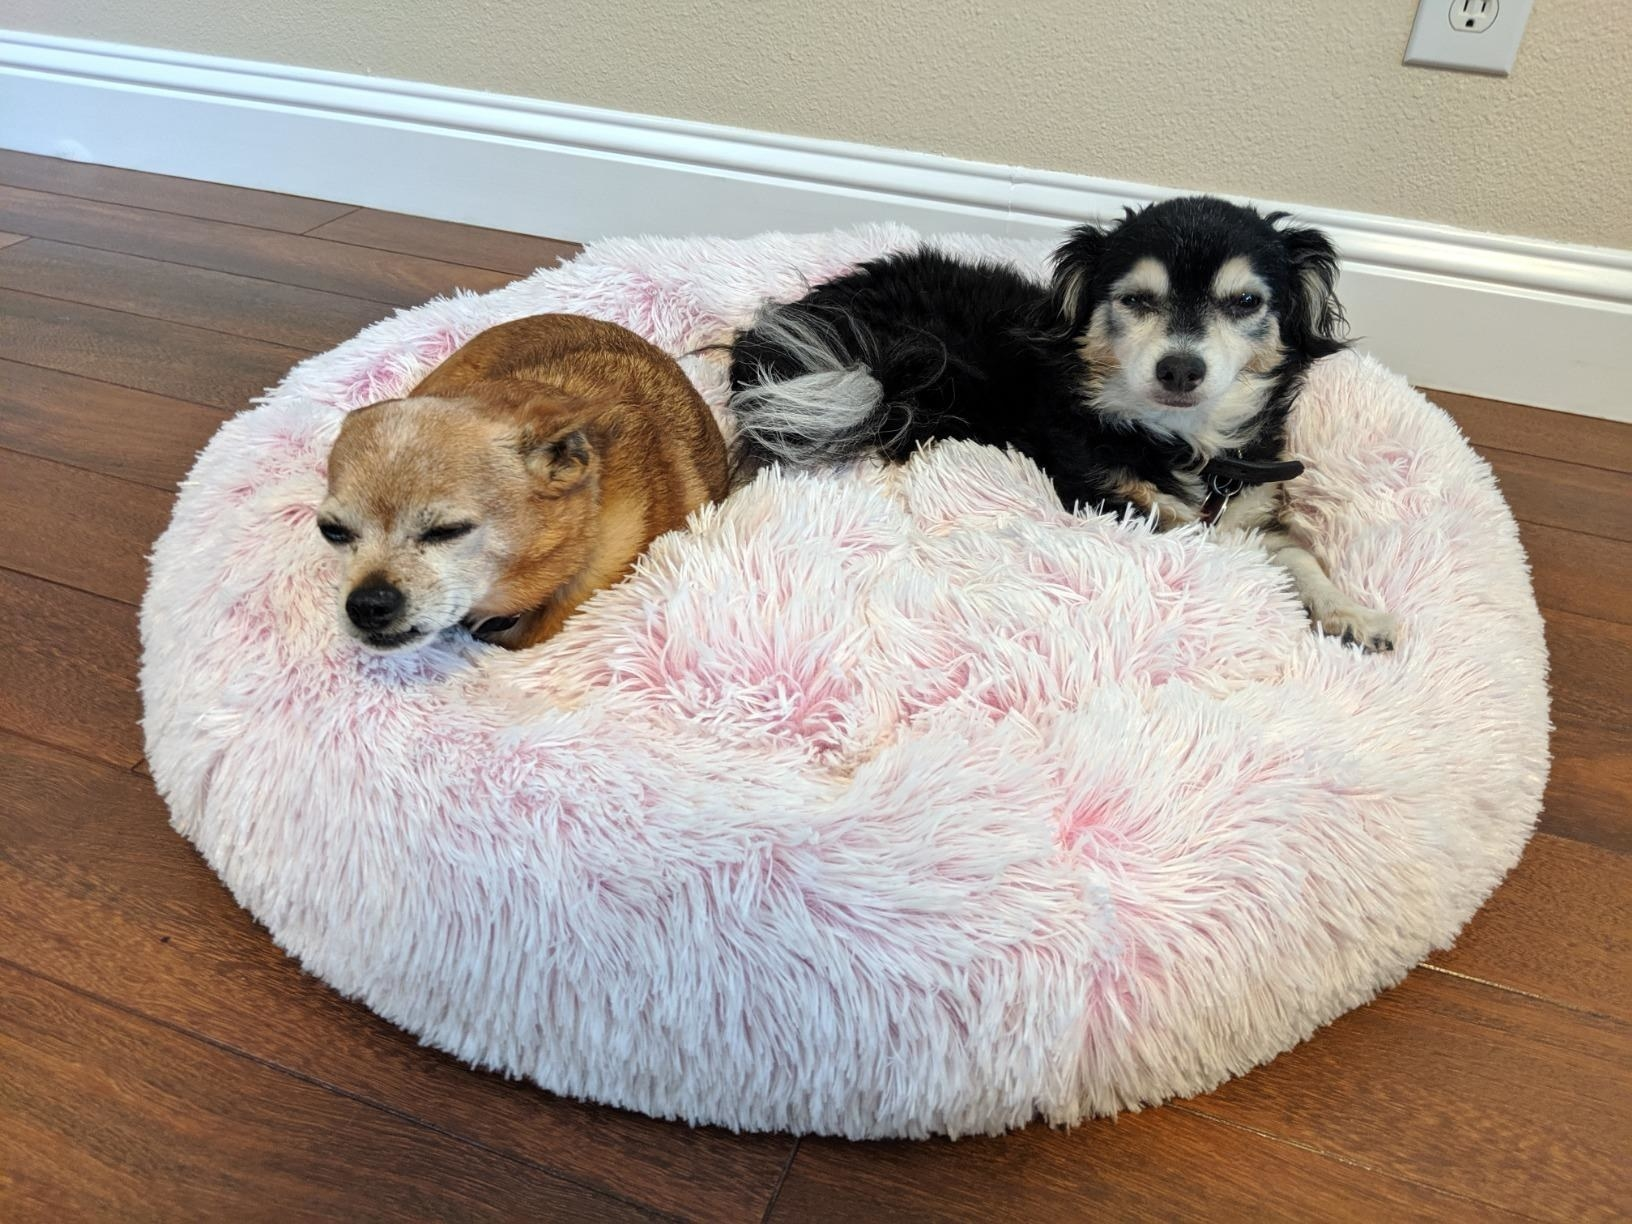 The large round pink faux fur bed, with two small dogs sitting comfortably inside